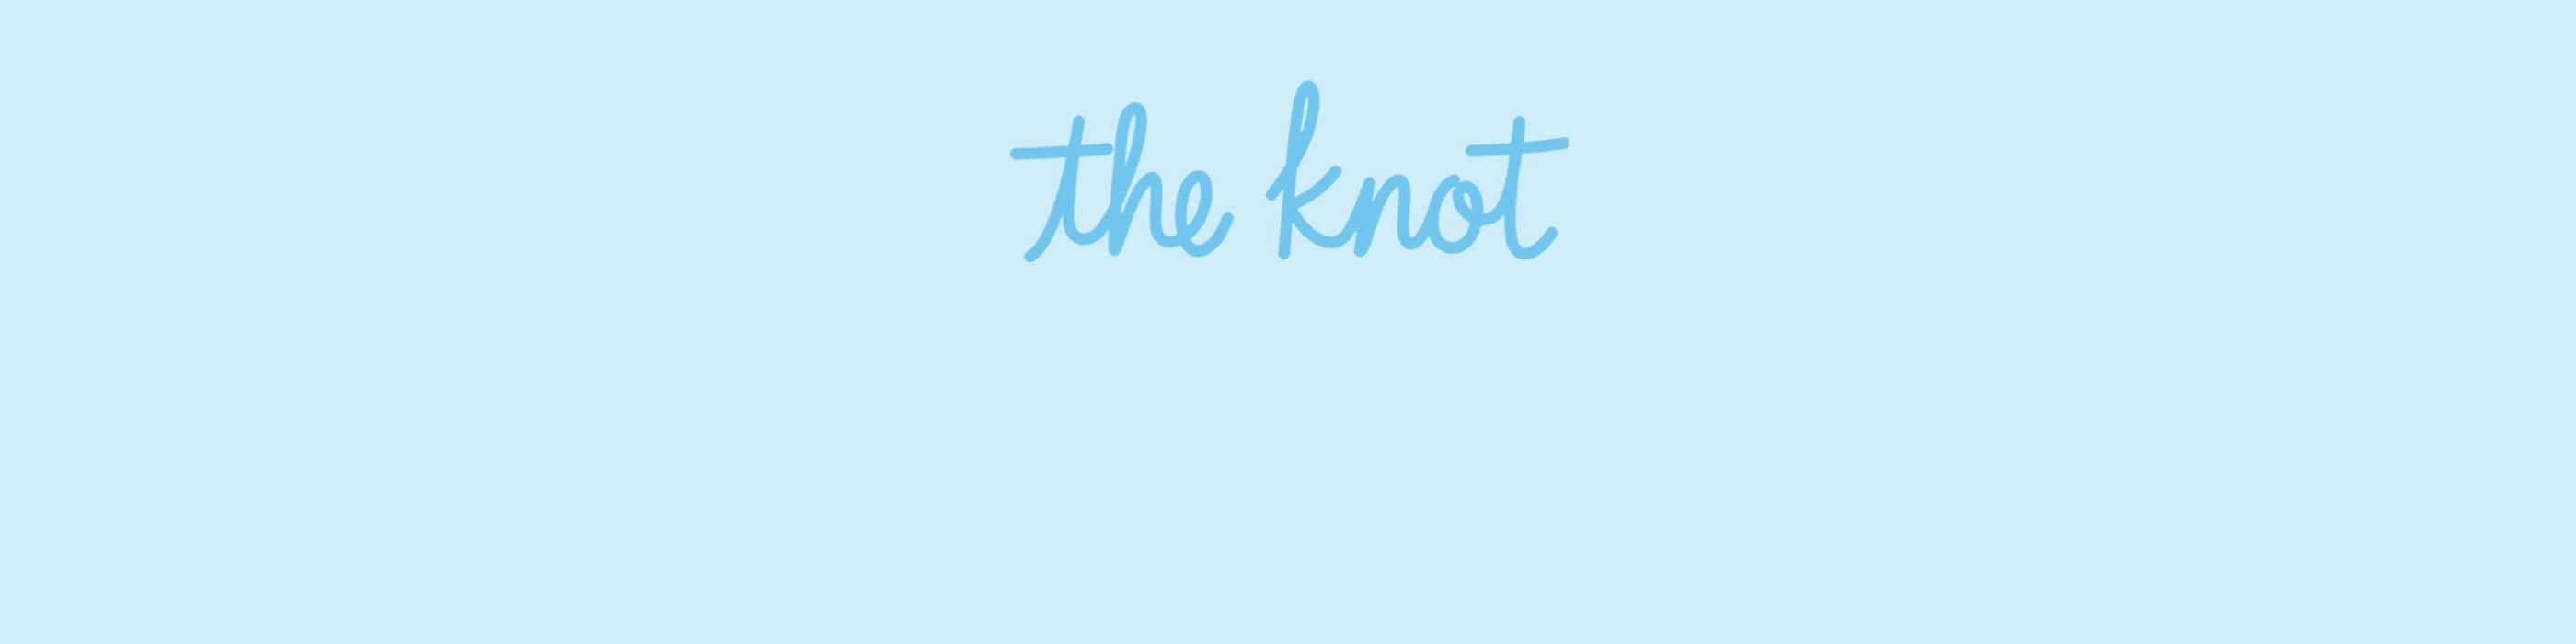 The Knot